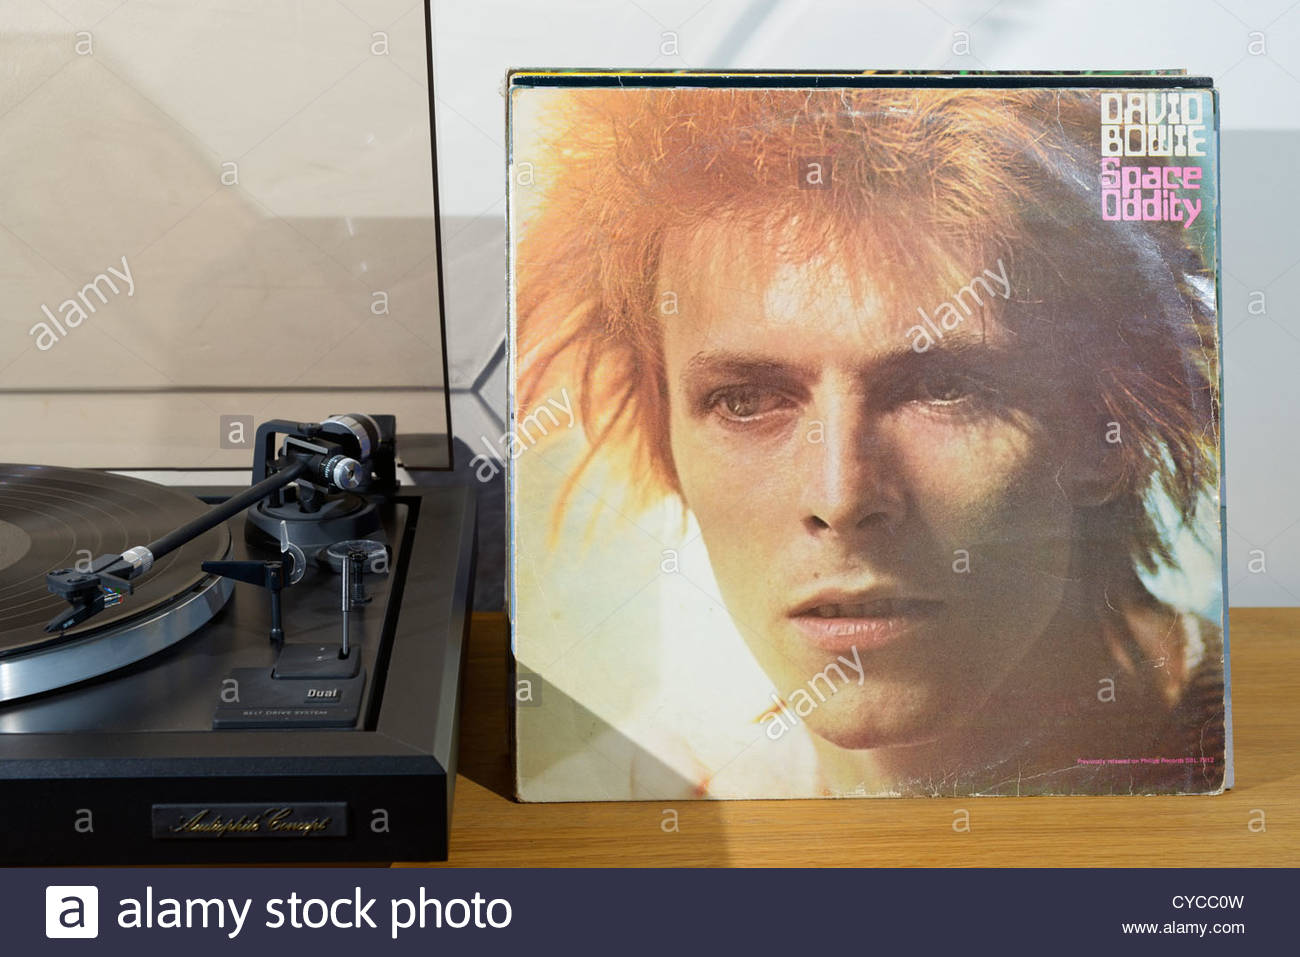 Record player and David Bowie album Space Oddity, England - Stock Image